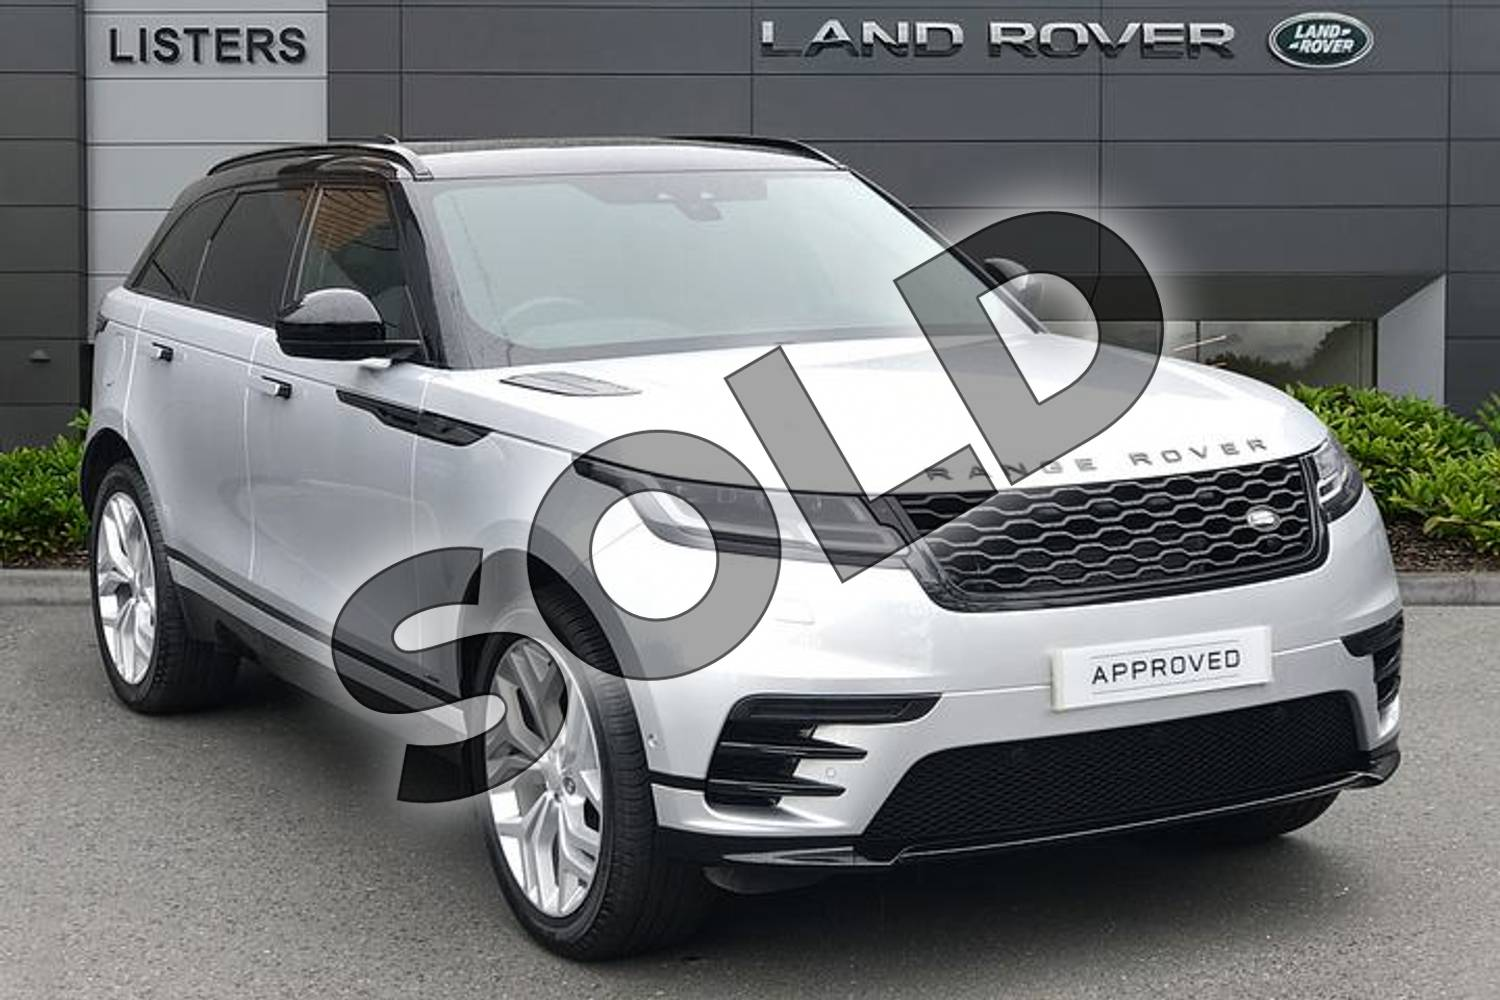 2020 Range Rover Velar Diesel Estate 2.0 D180 R-Dynamic SE 5dr Auto in Indus Silver at Listers Land Rover Solihull